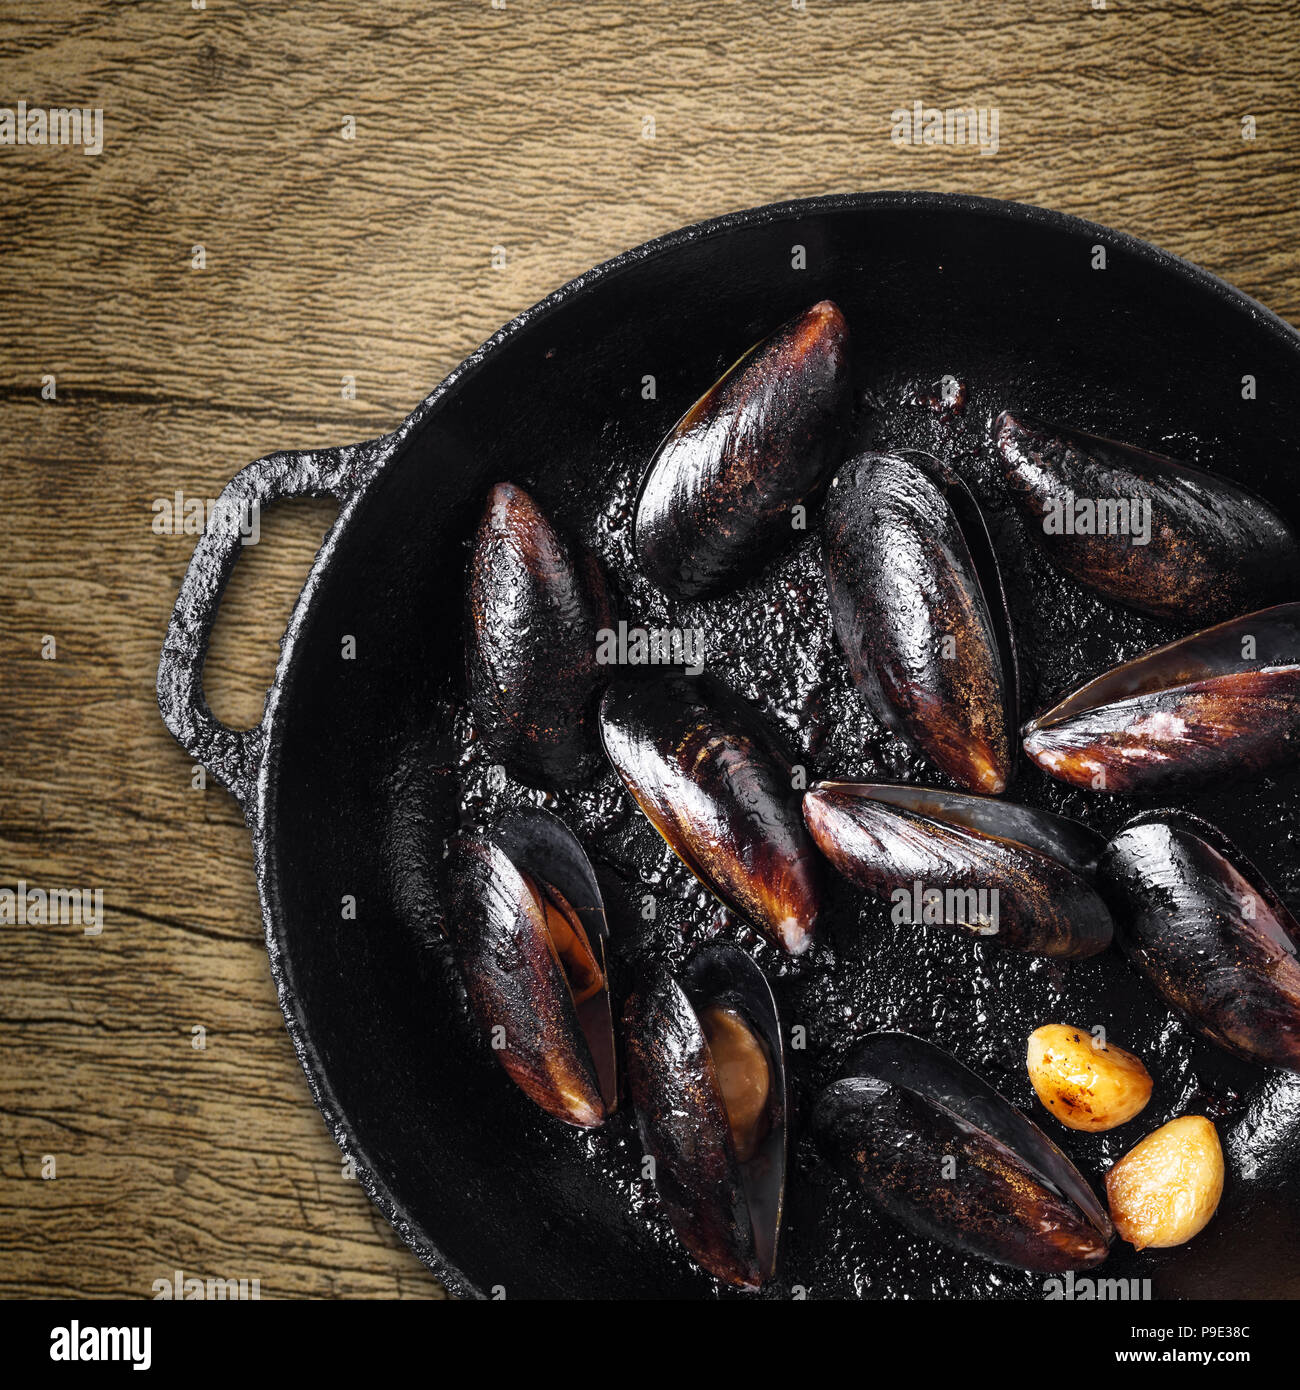 frying pan with cooked mussels on wooden background - Stock Image